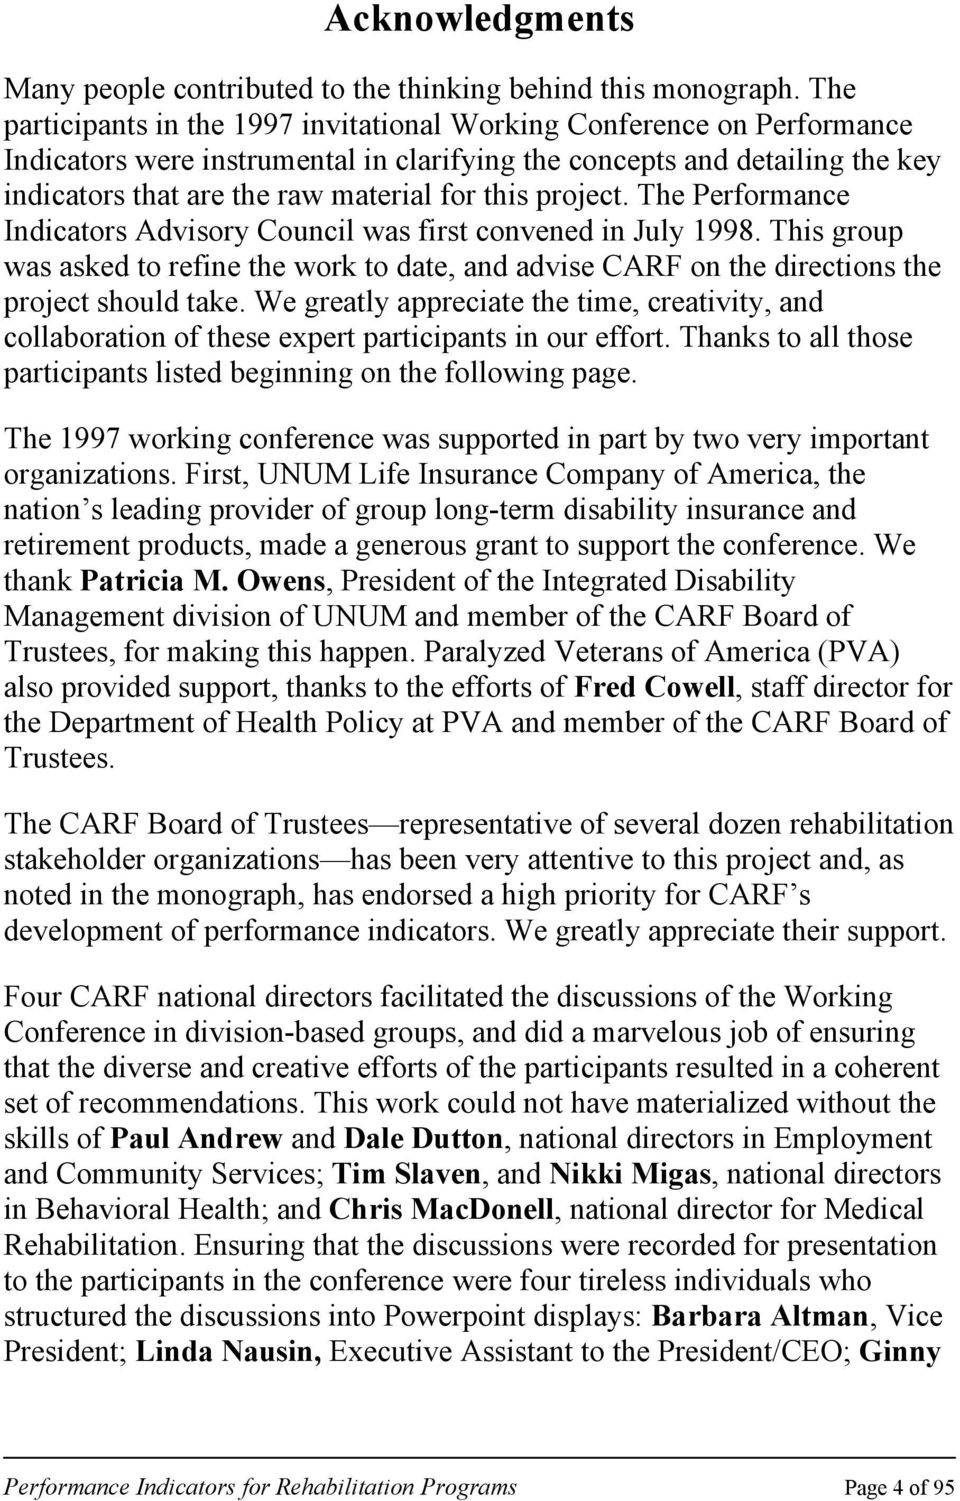 project. The Performance Indicators Advisory Council was first convened in July 1998. This group was asked to refine the work to date, and advise CARF on the directions the project should take.